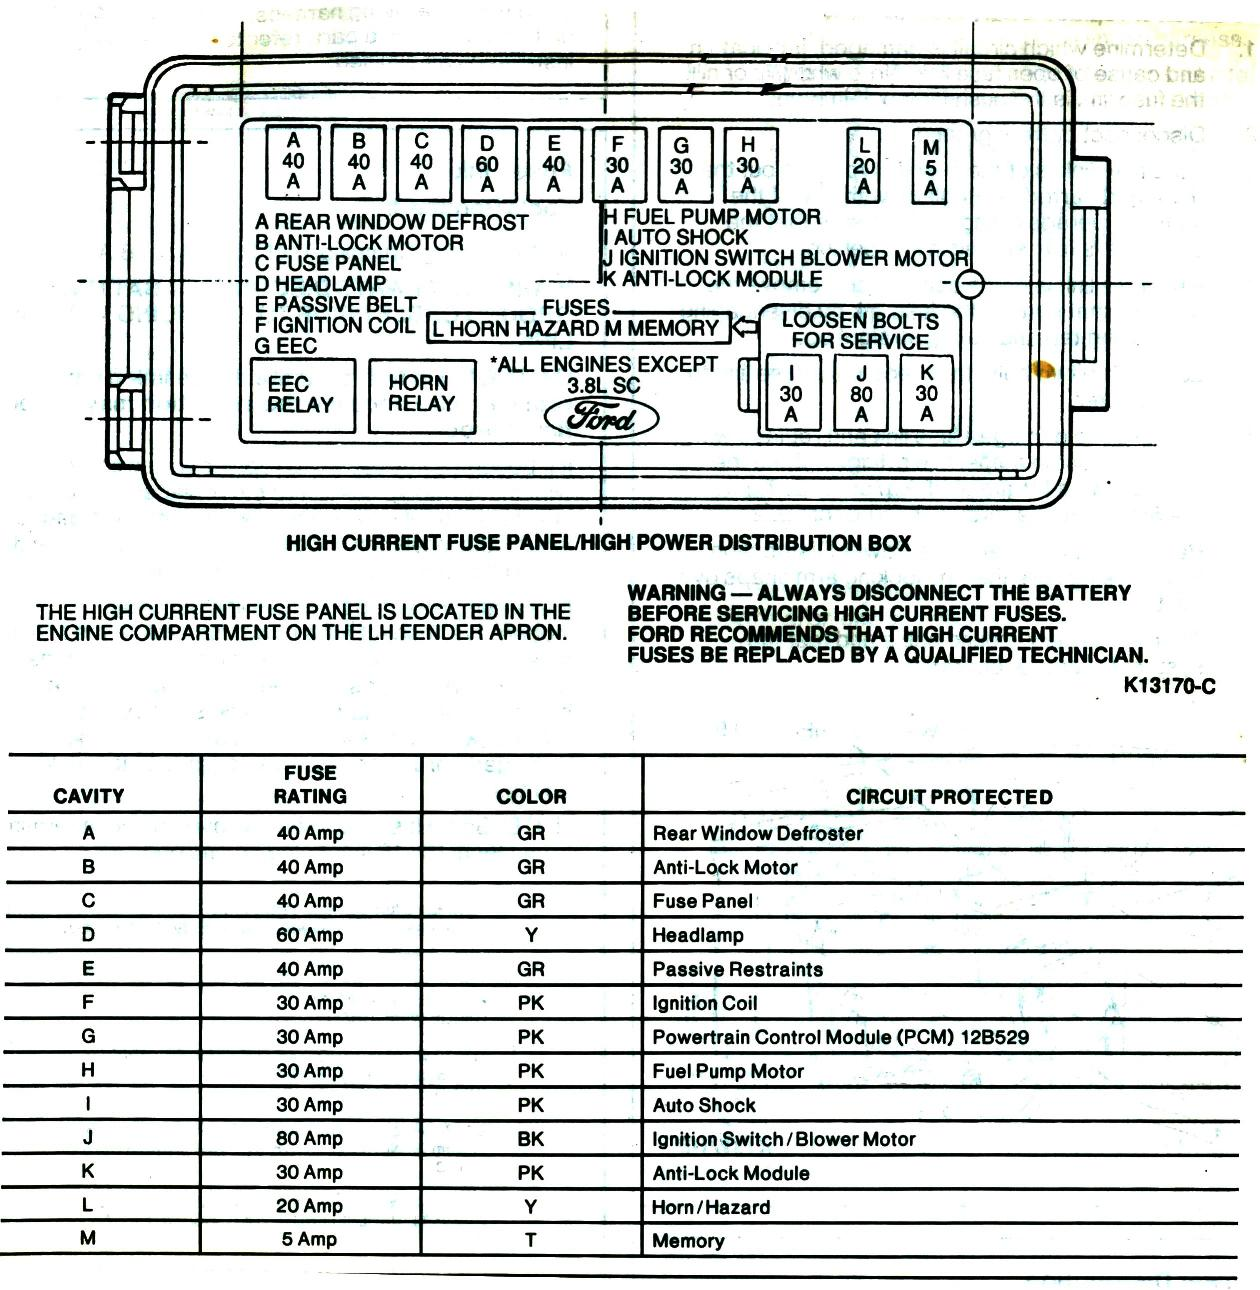 dist box under dash fuse box diagram? 96 ford taurus fuse box diagram at panicattacktreatment.co